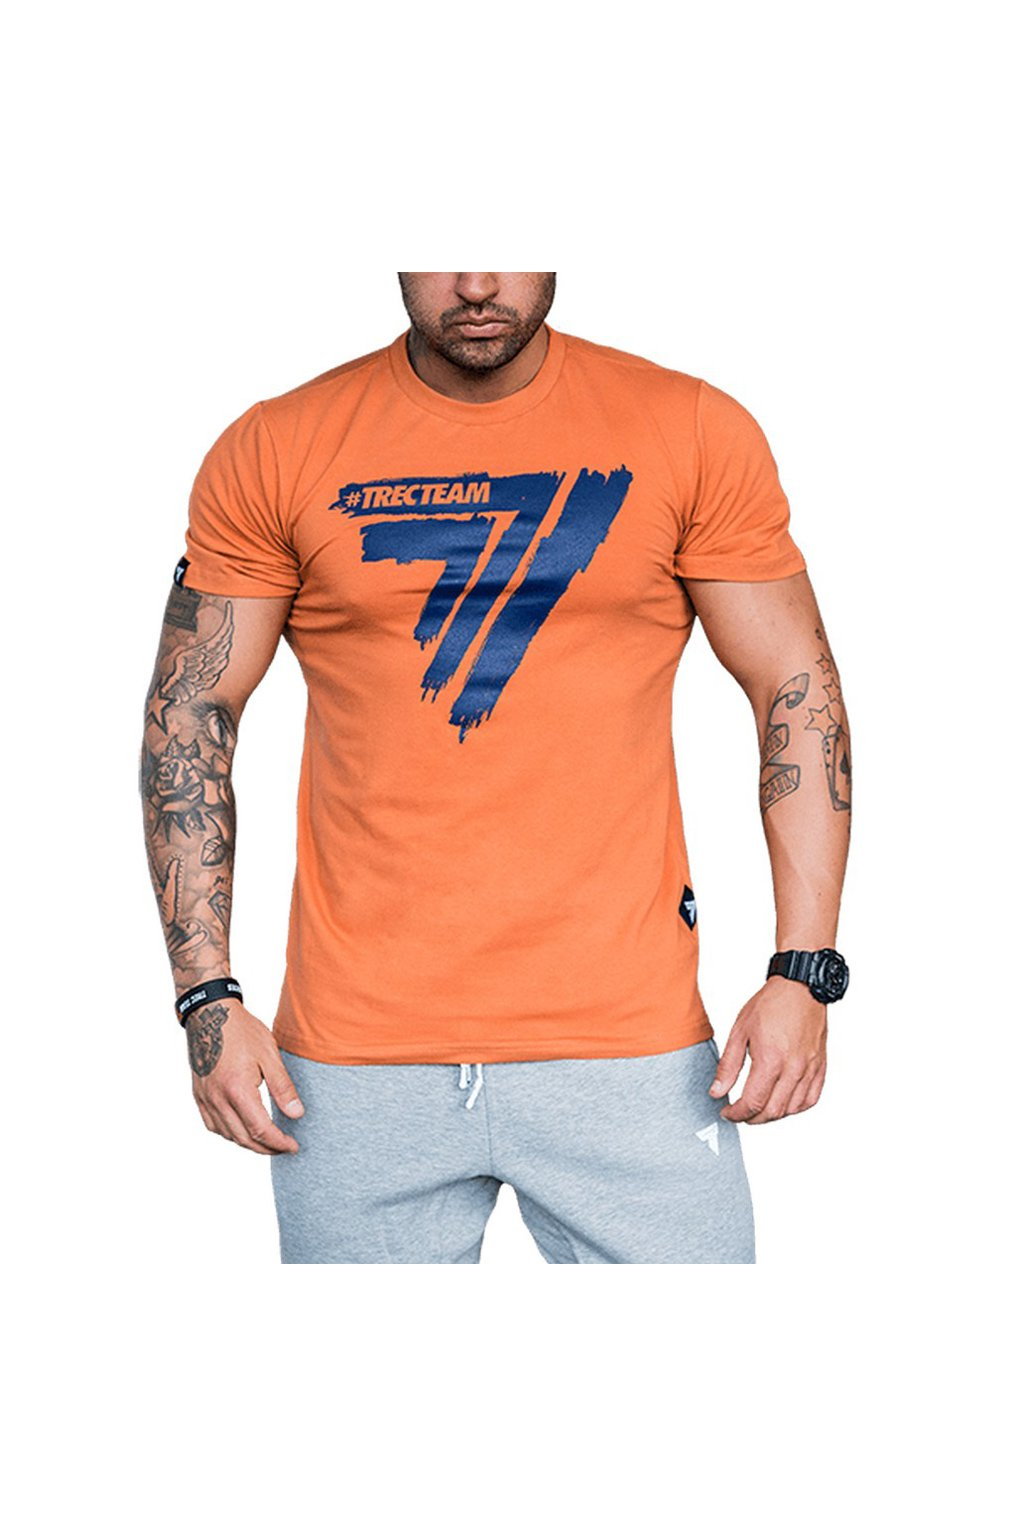 TSHIRT PLAY HARD 008 ORANGE 01